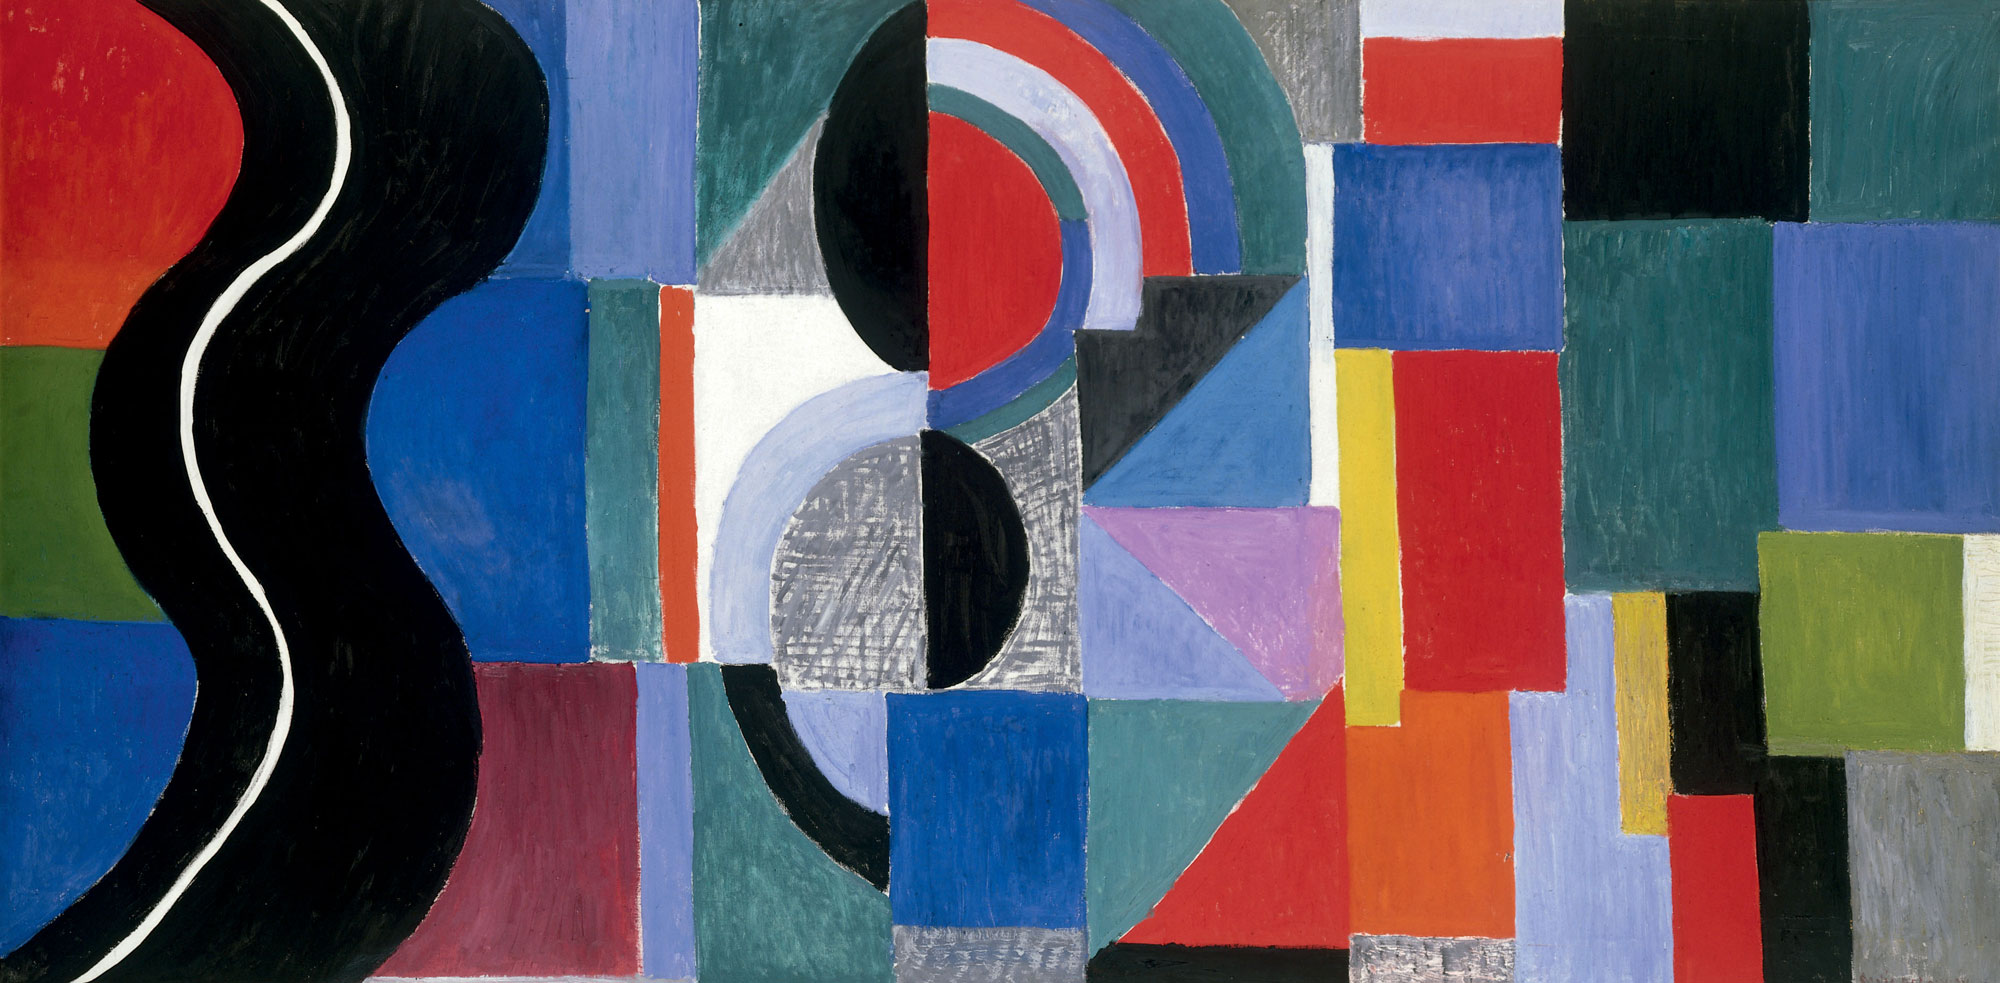 sonia delaunay We want to sell your art - the oldest online art brokerage - founded las vegas, nv 1983 - celebrating 34 years - online 27 yrs since 1994 - register for our 3x.